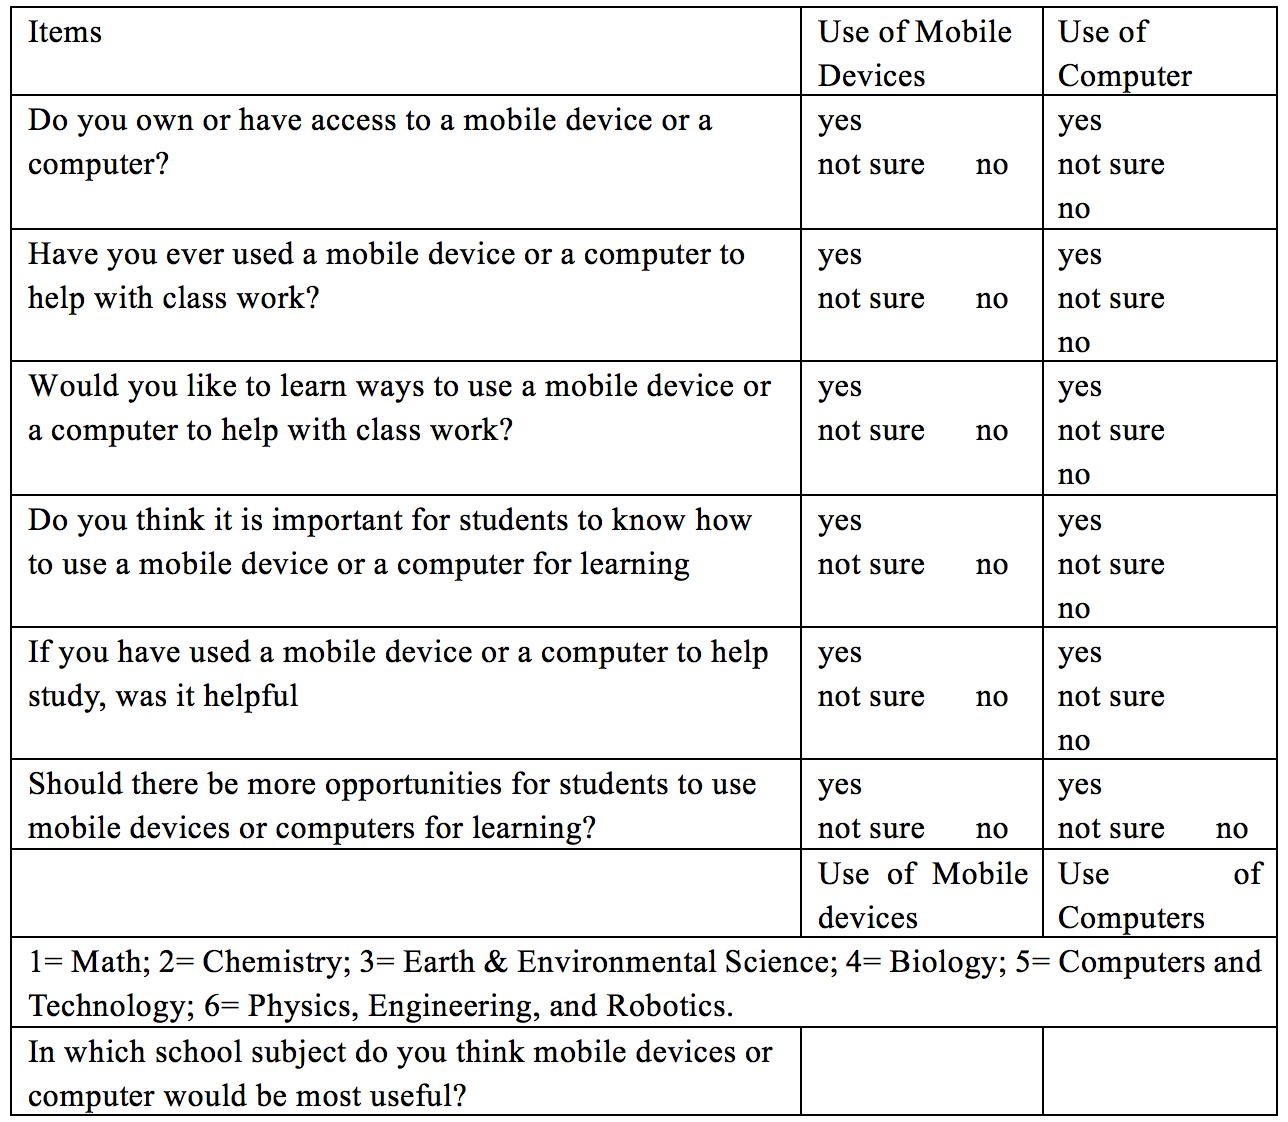 utilizing technology for learning stem subjects perceptions of  appendix 2